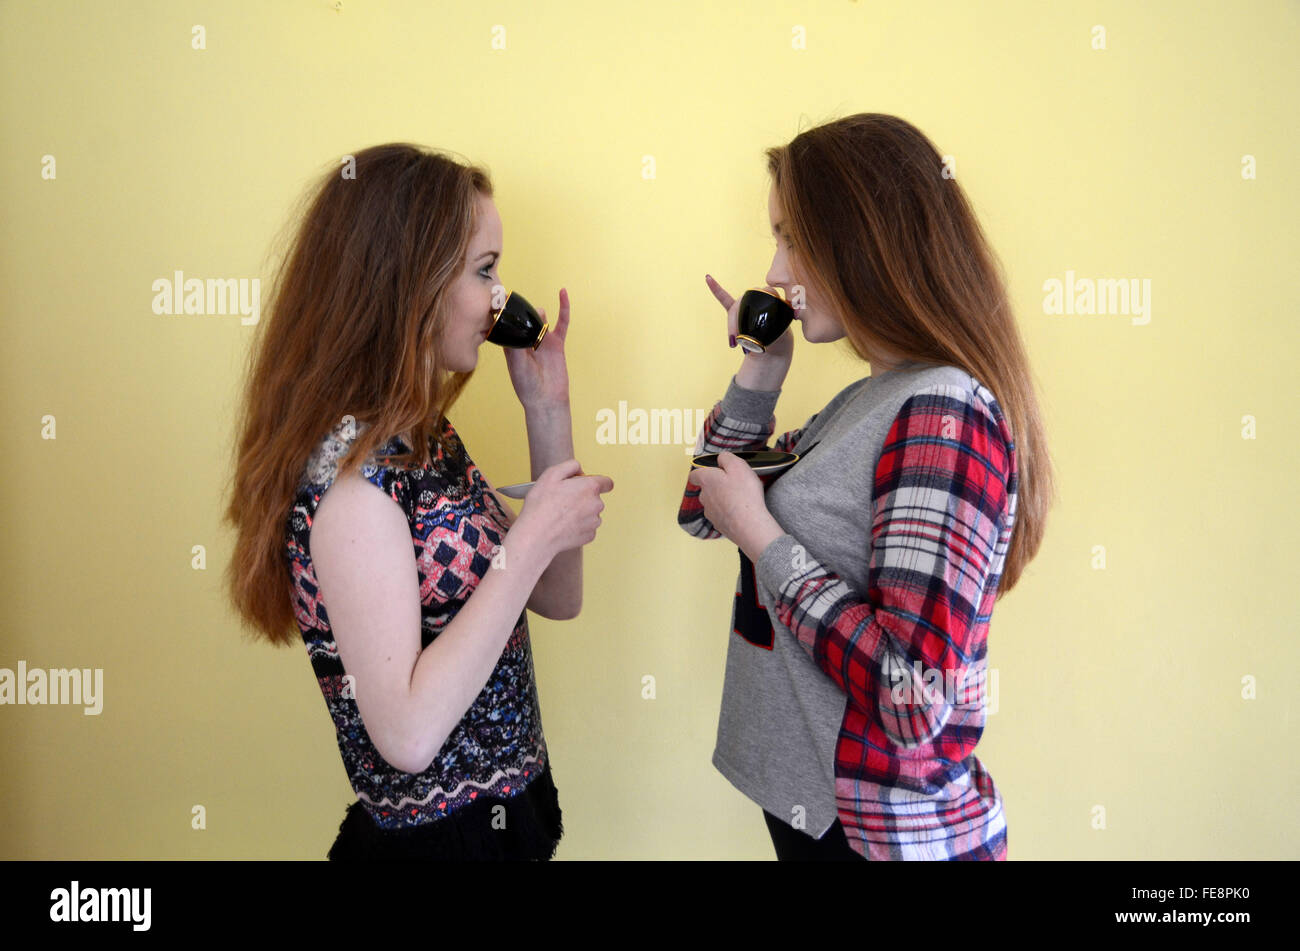 Young Women Drinking Coffee Facing Each Other Against Yellow Wall Stock Photo